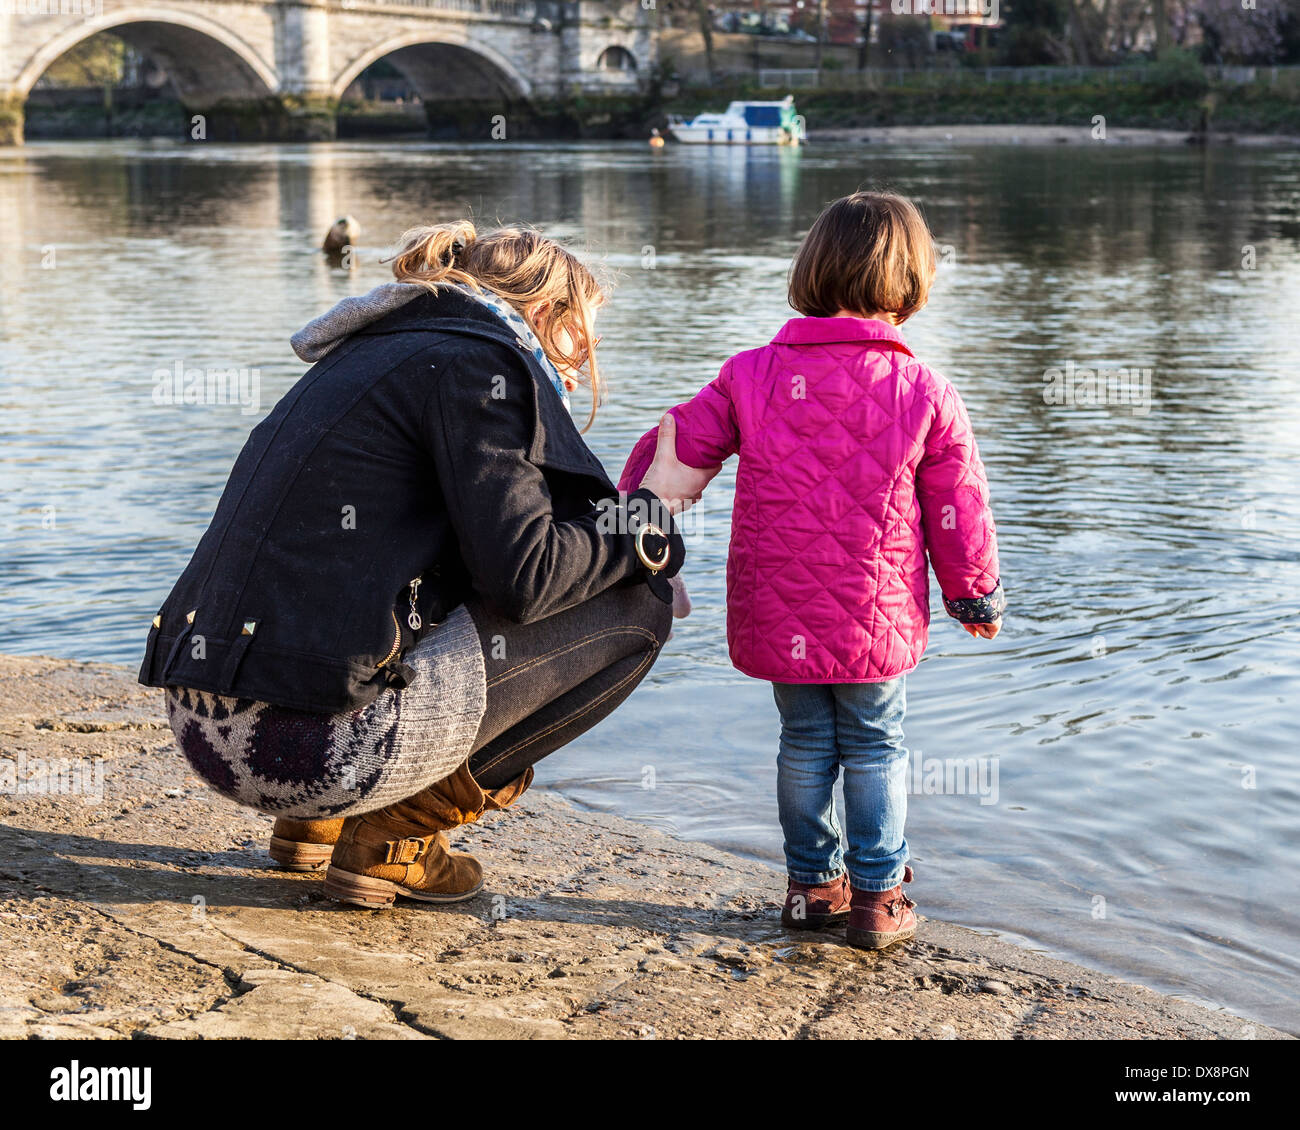 Woman holds arm of young child in pink coat on banks of river Thames, Richmond upon Thames, London, UK - Stock Image